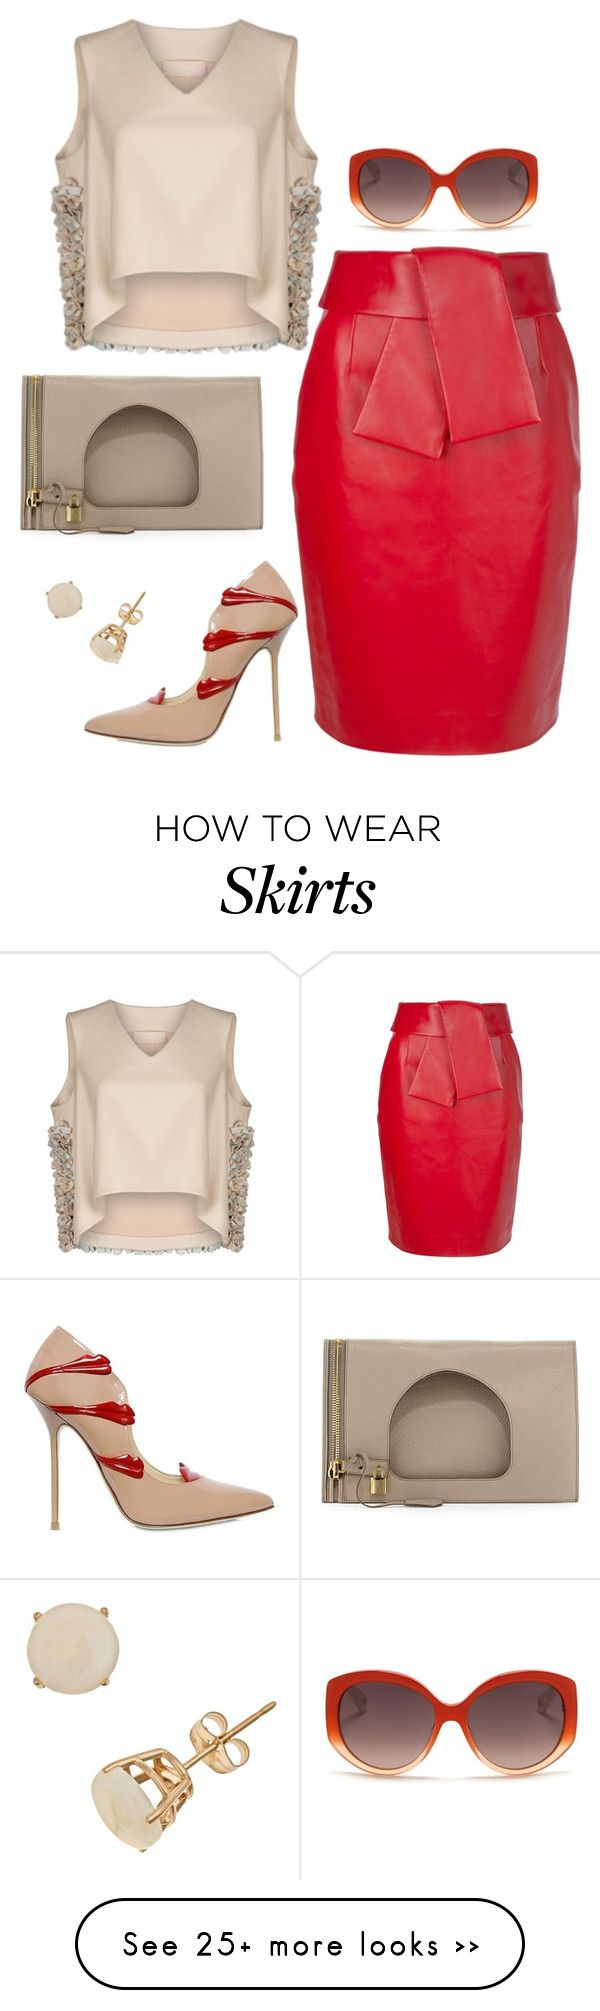 """""""My Skirt is just as red as my lips"""" by fashionkill21 on Polyvore featuring Balenciaga, Giannico, Ruban, Tom Ford and Christian Dior"""